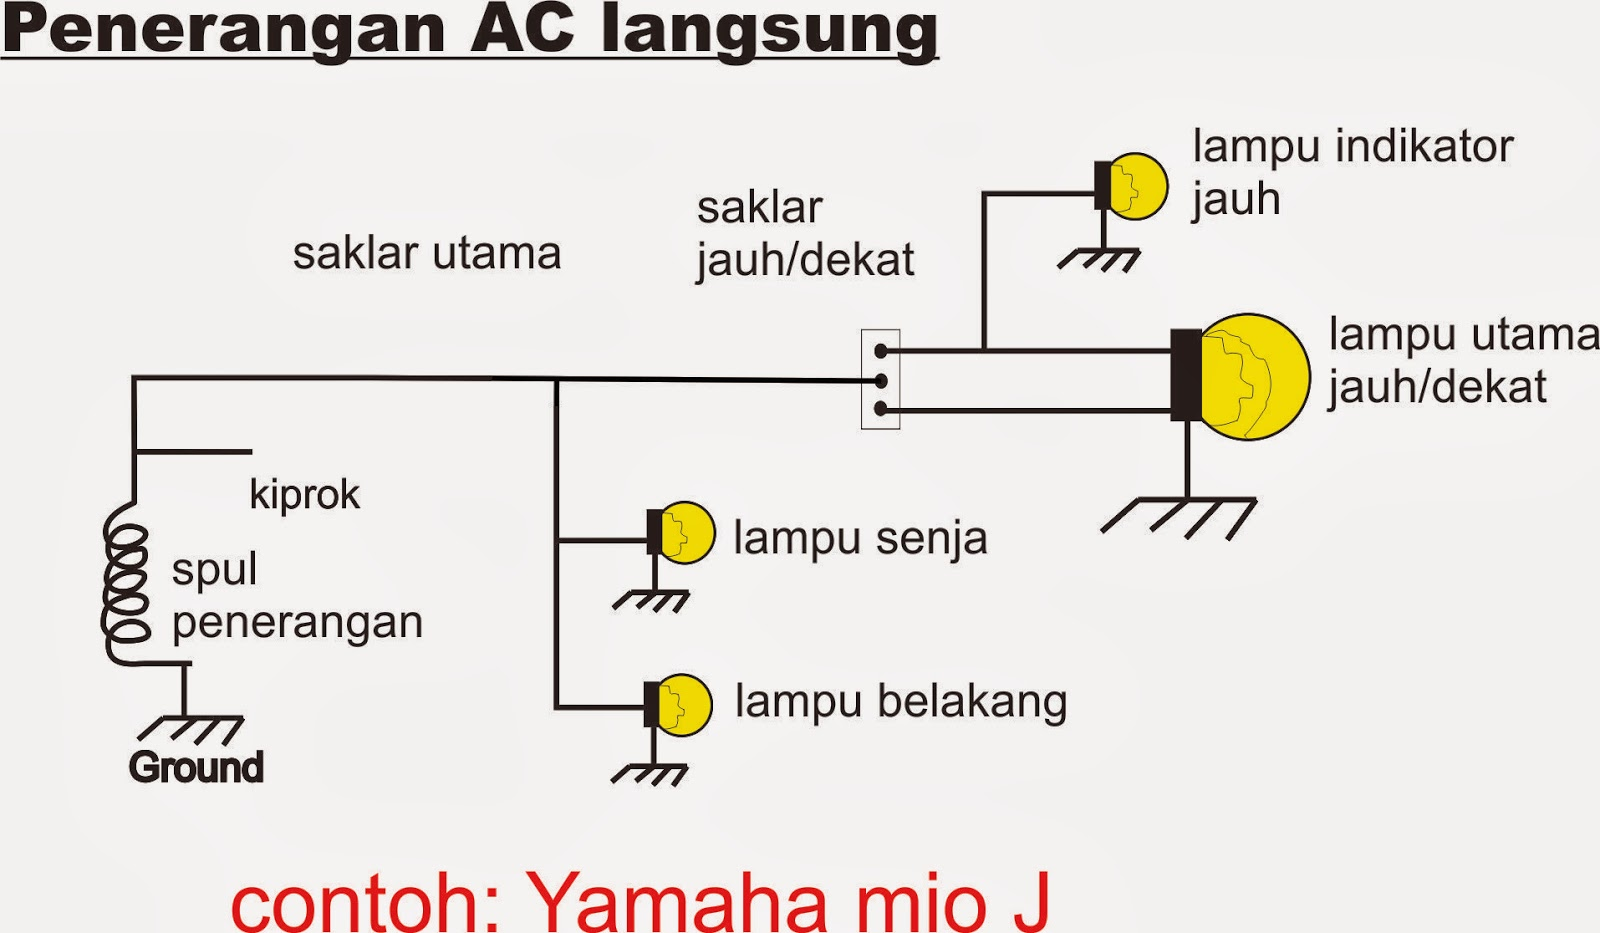 yamaha mio soul wiring diagram york diagrams steering